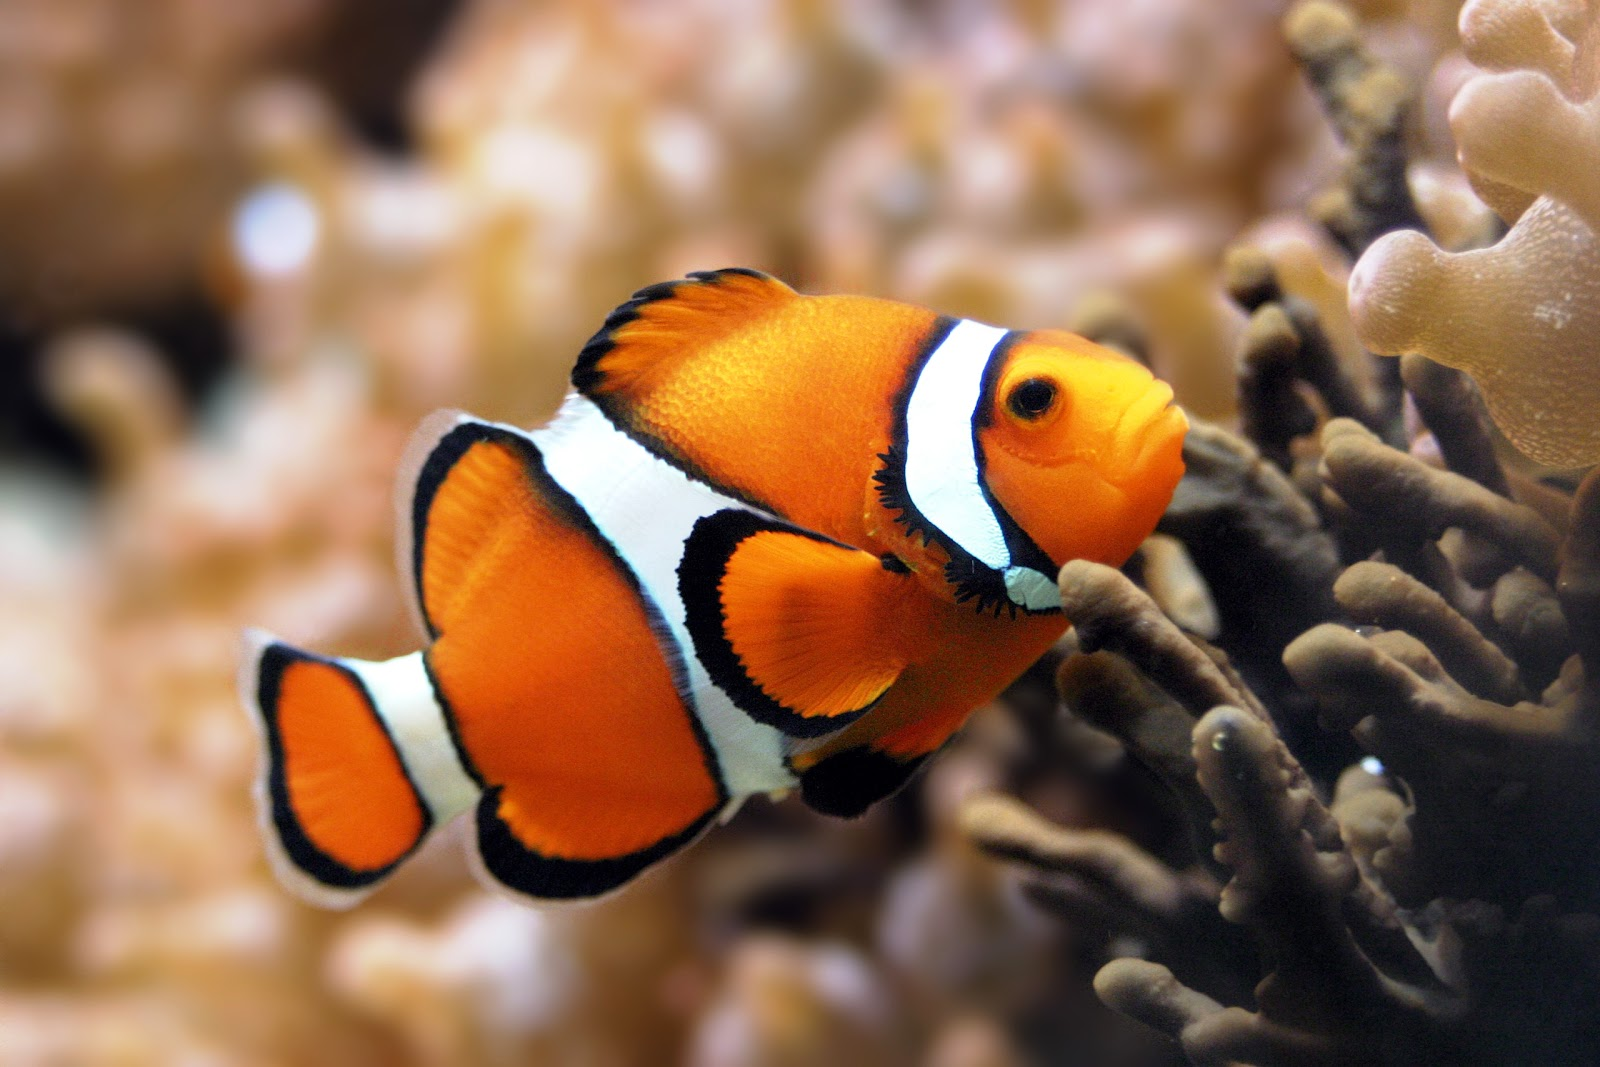 Can you get freshwater fish that look like clown fish